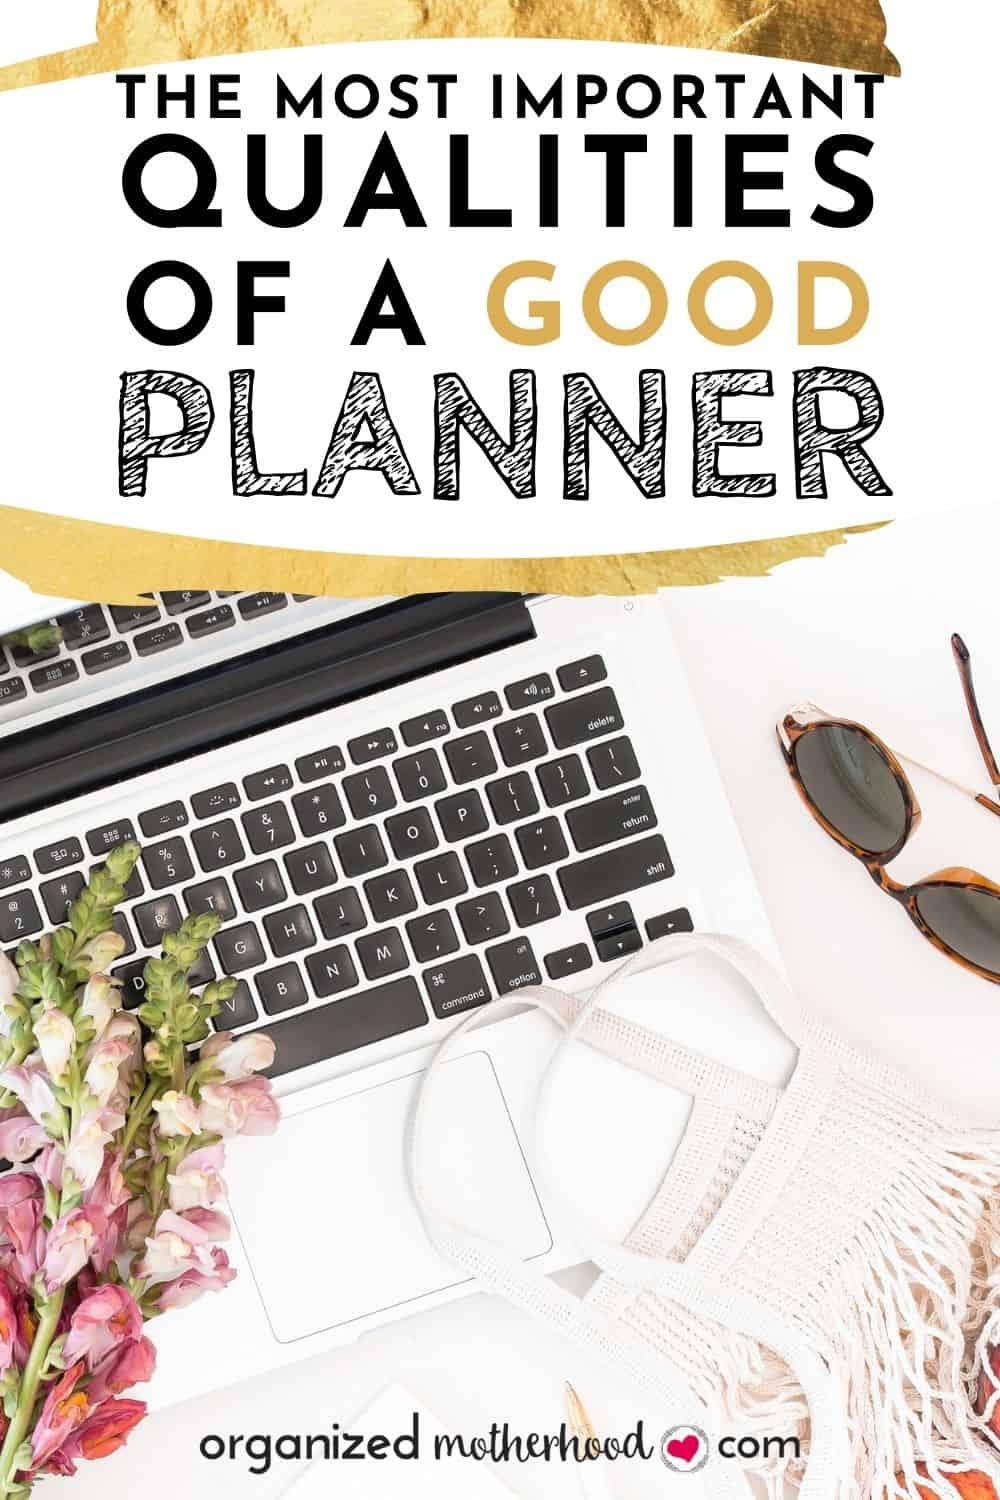 The most important qualities of a good planner, these characteristics will help you live a great life.